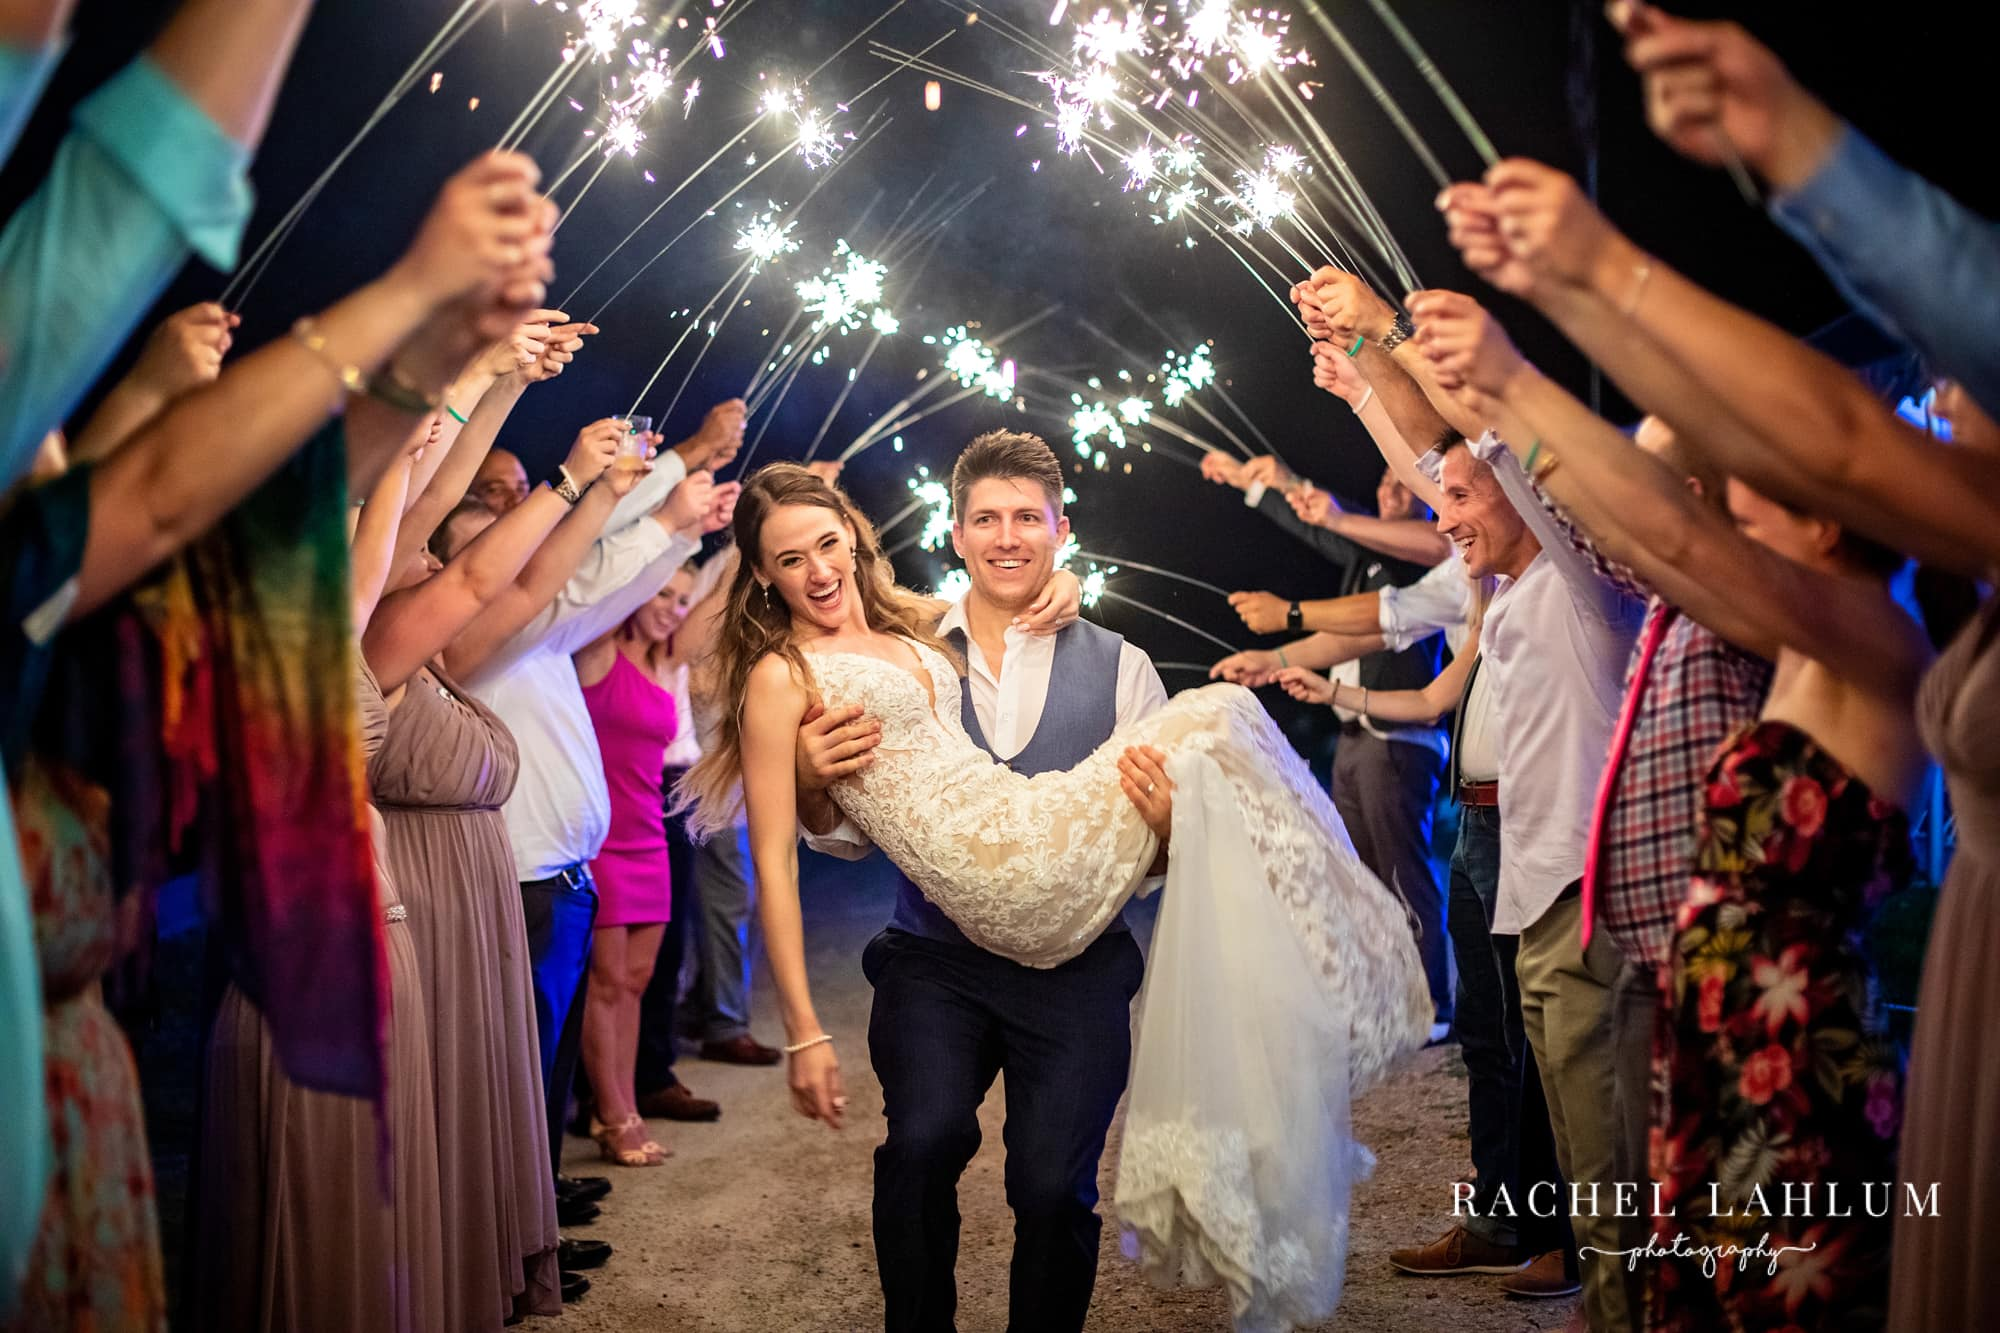 Groom carries bride through tunnel of sparklers.